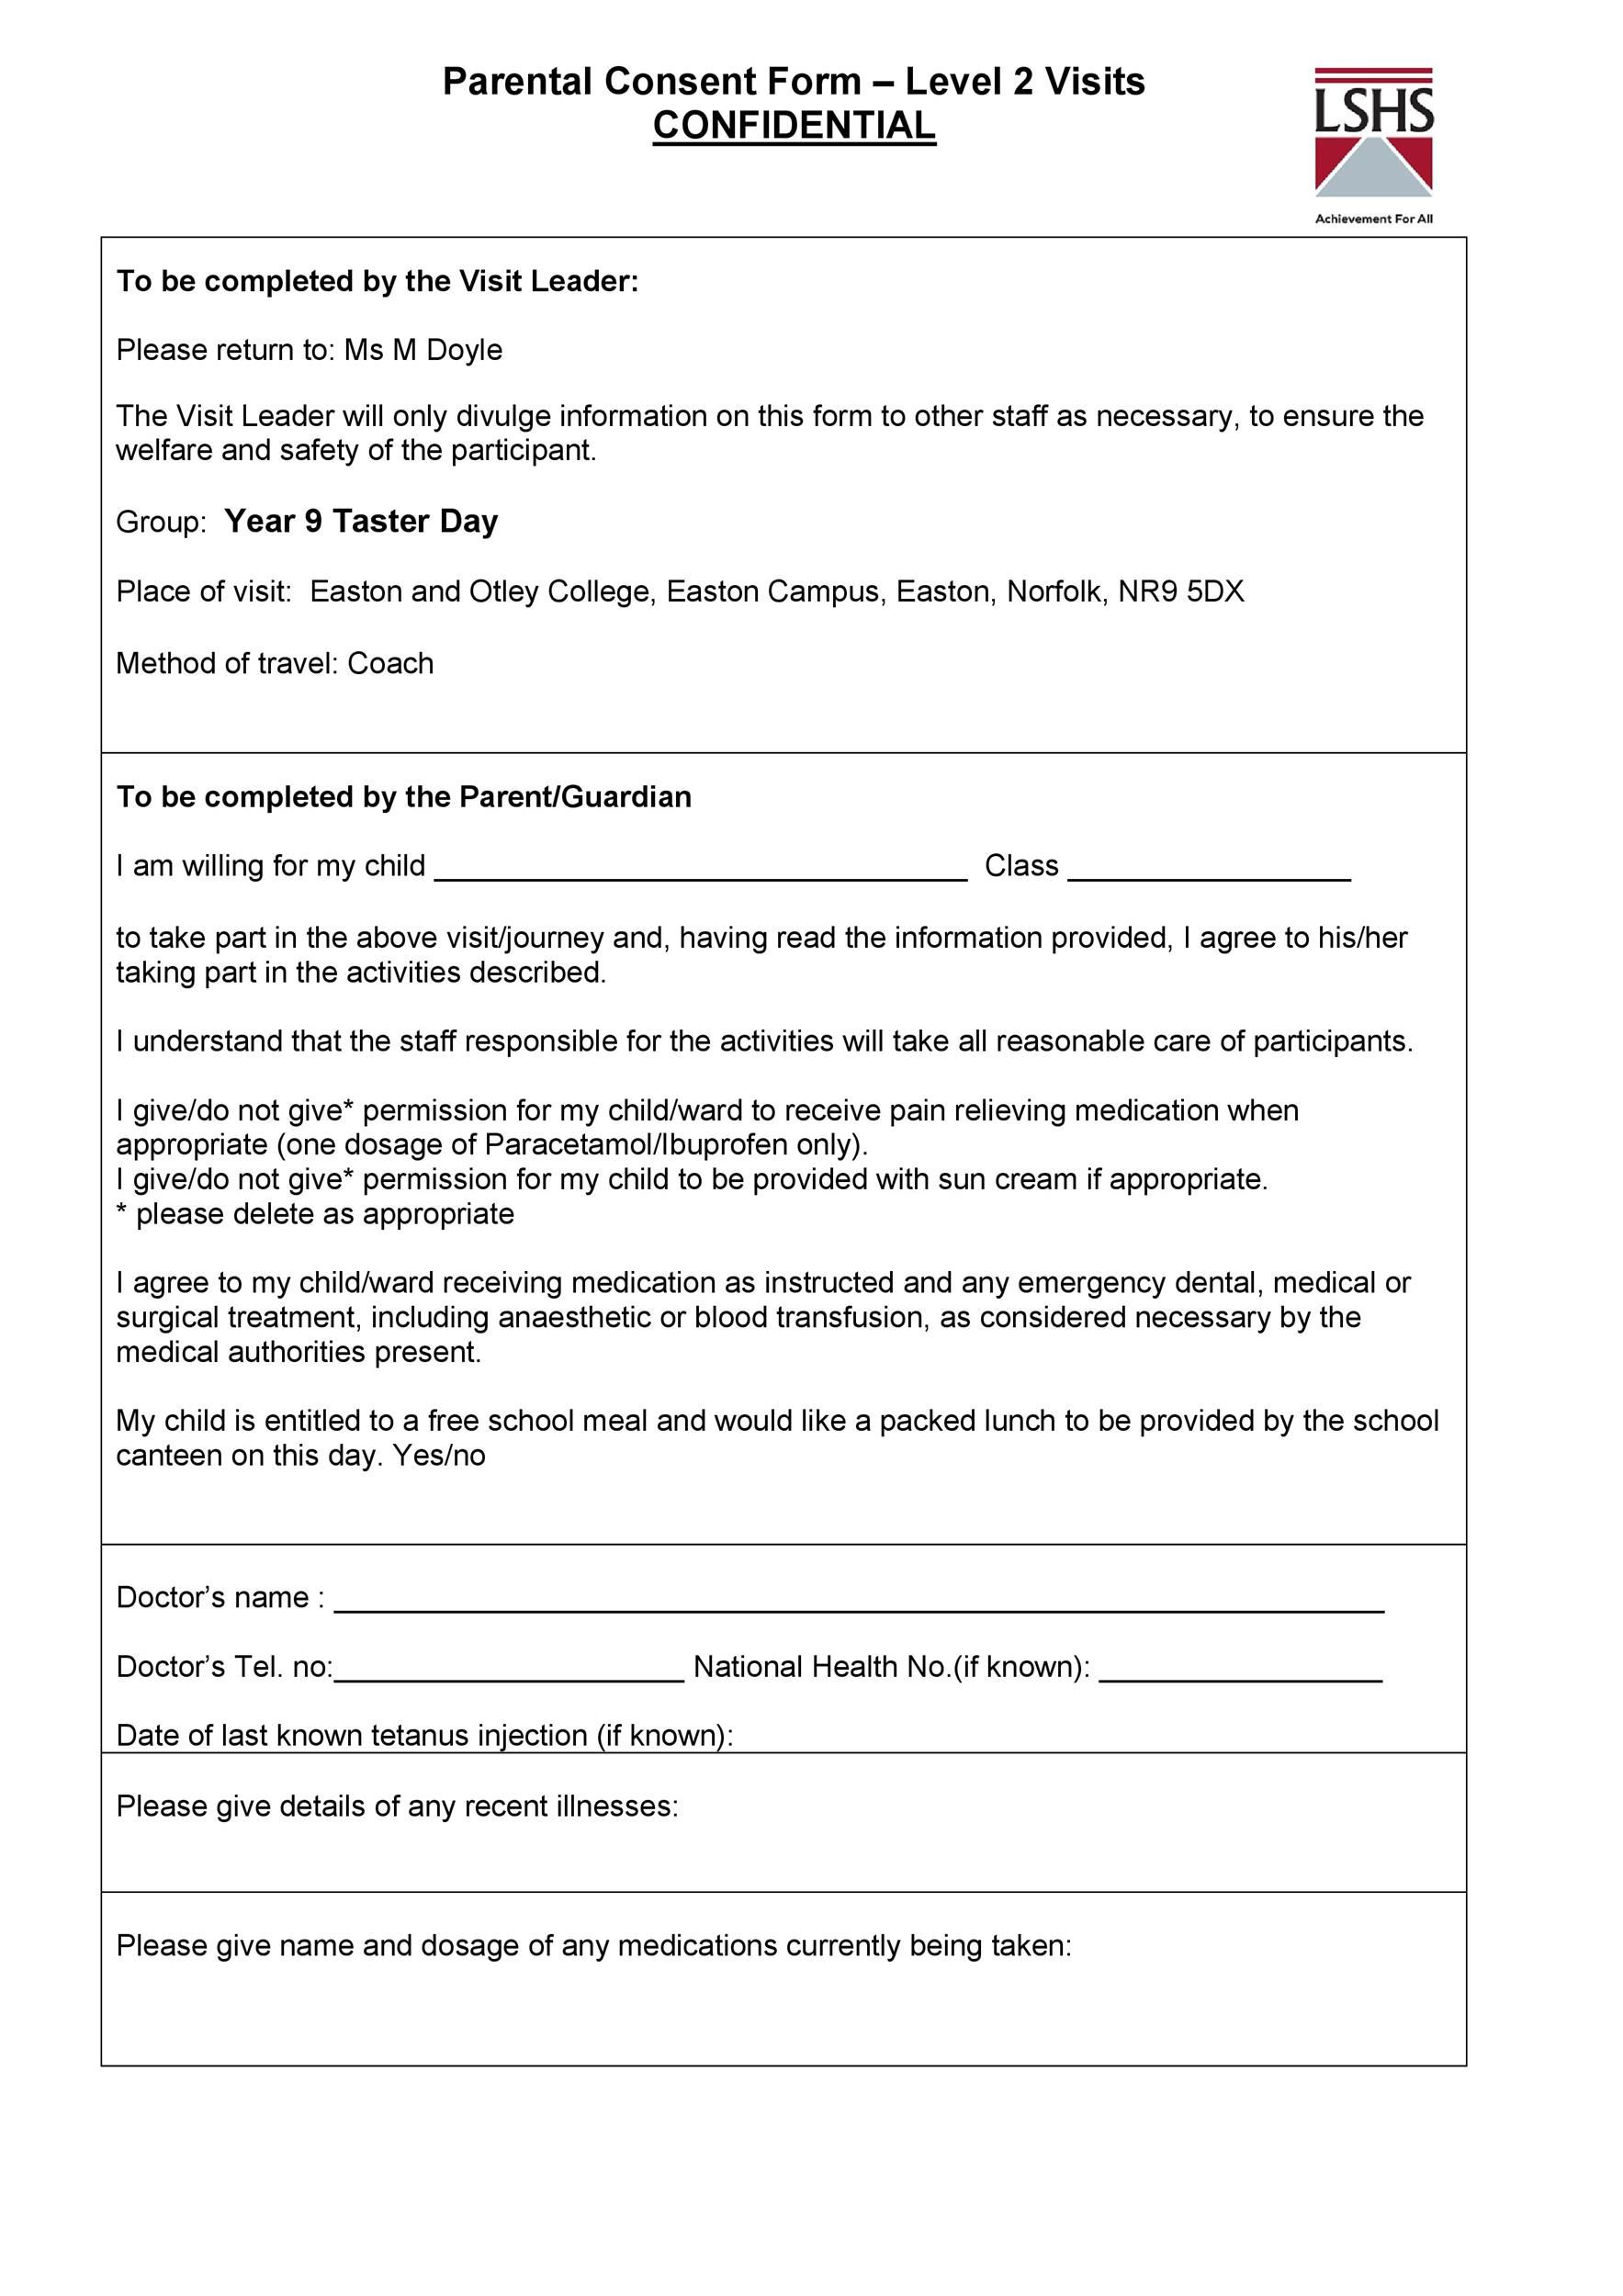 009 Incredible Free Child Medical Consent Form Template Design  PdfFull